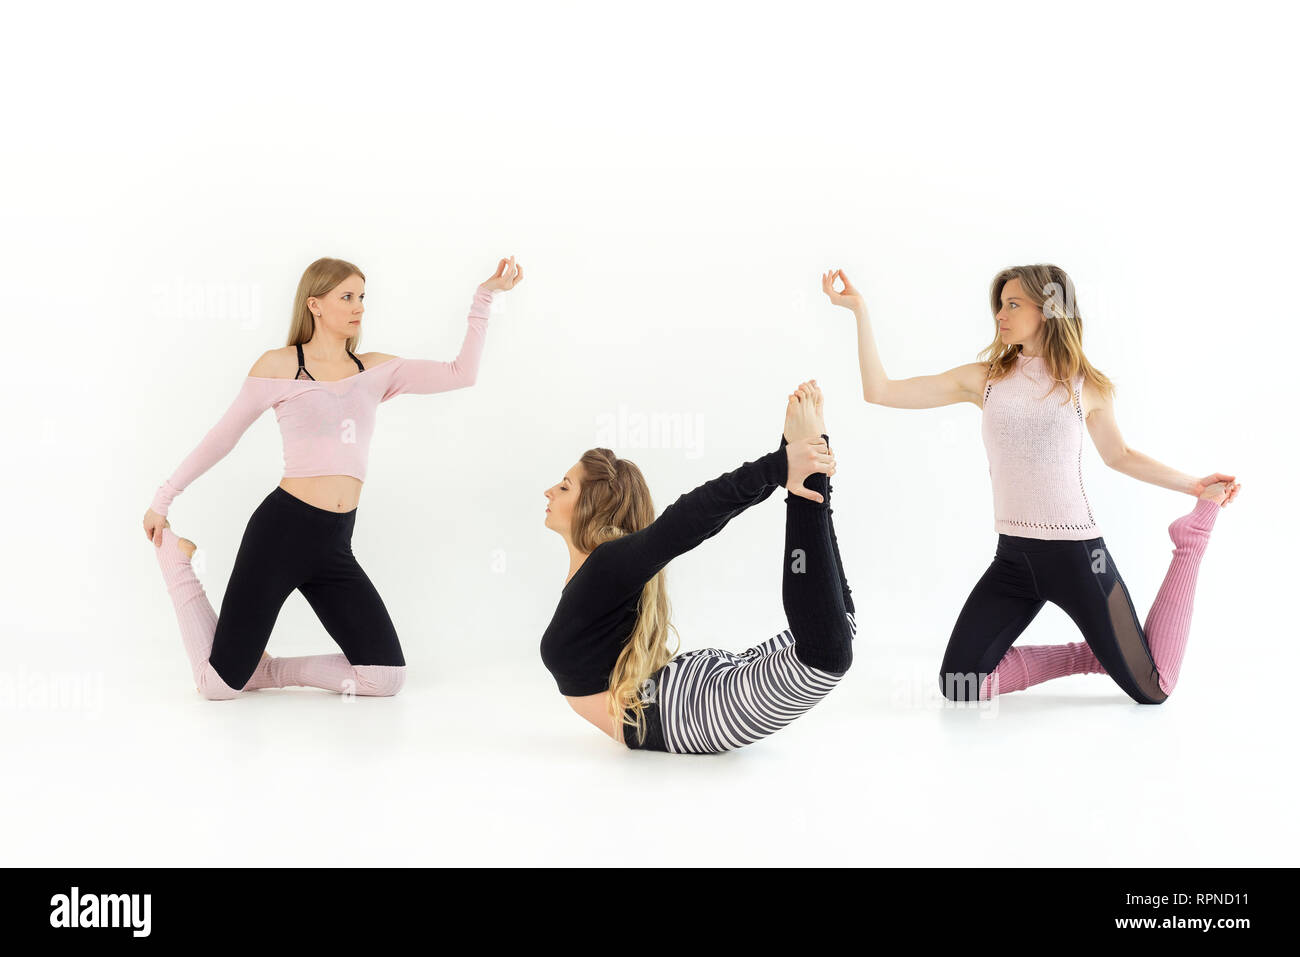 Three People Doing Yoga Poses High Resolution Stock Photography And Images Alamy